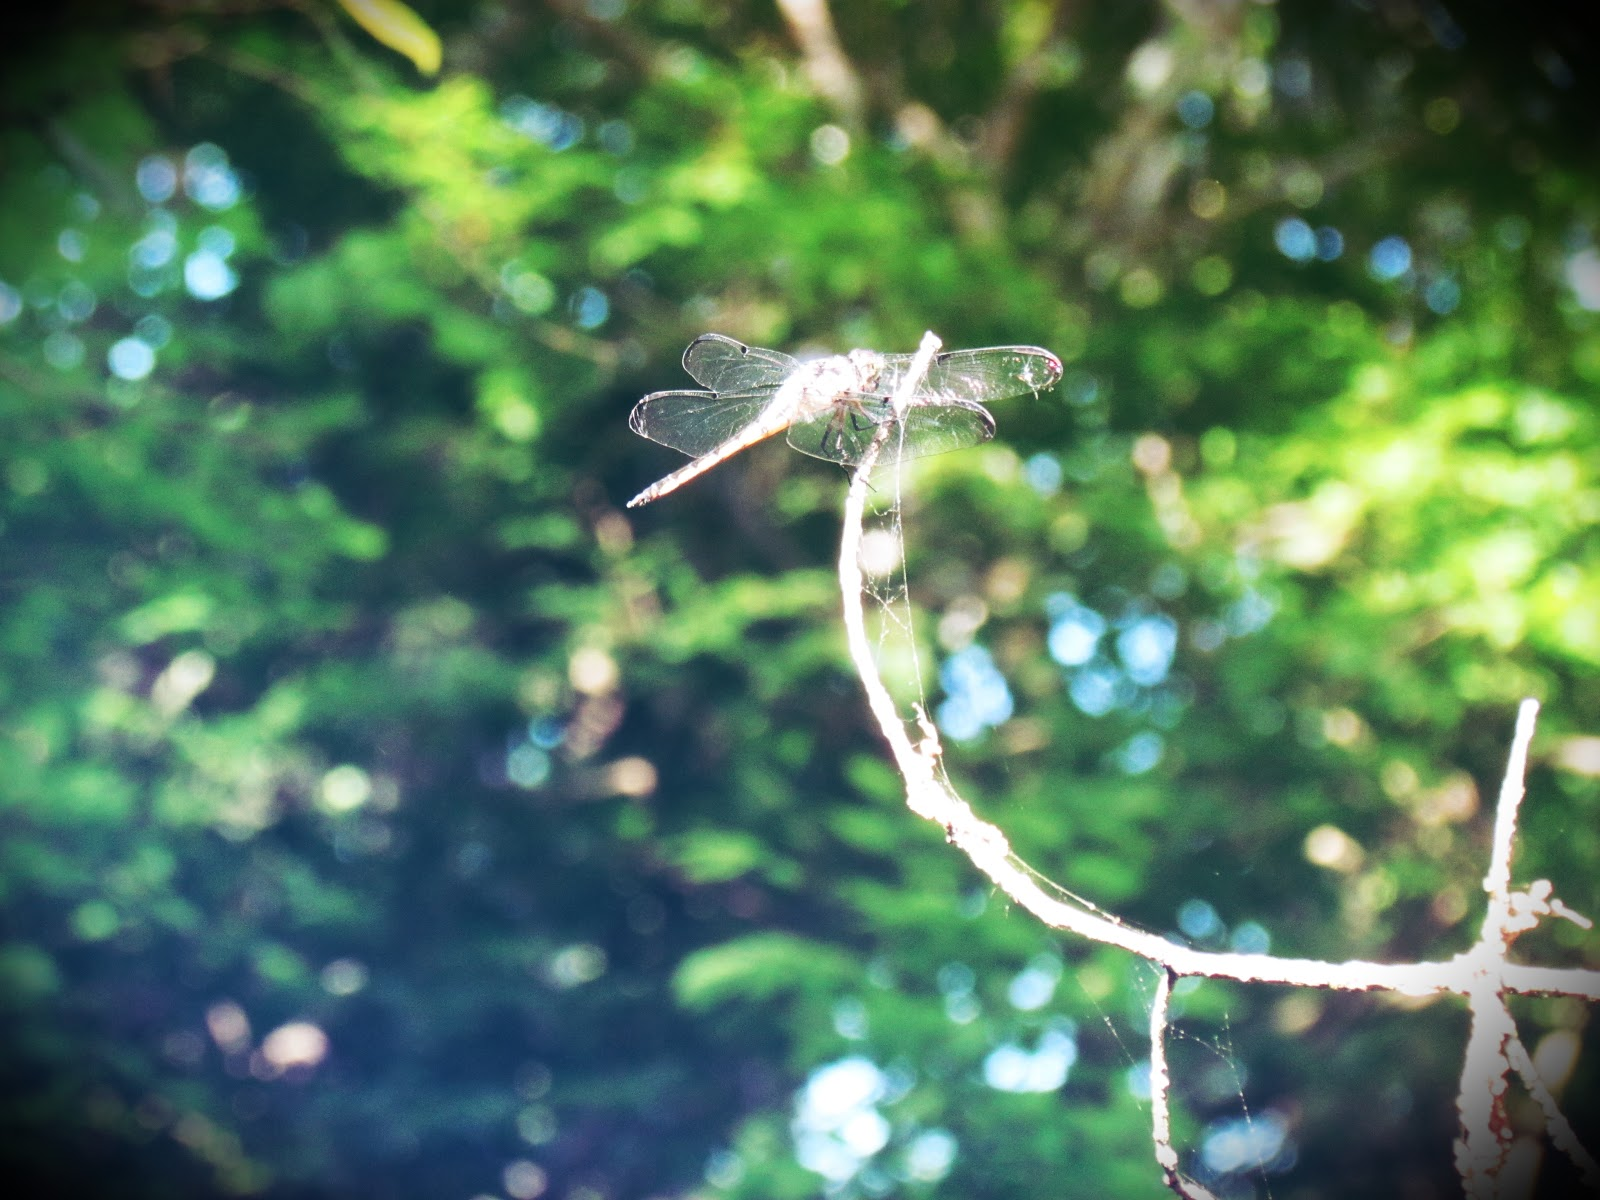 A dragonfly on a tree branch on a hiking trail, the dragonfly is a symbol of good luck